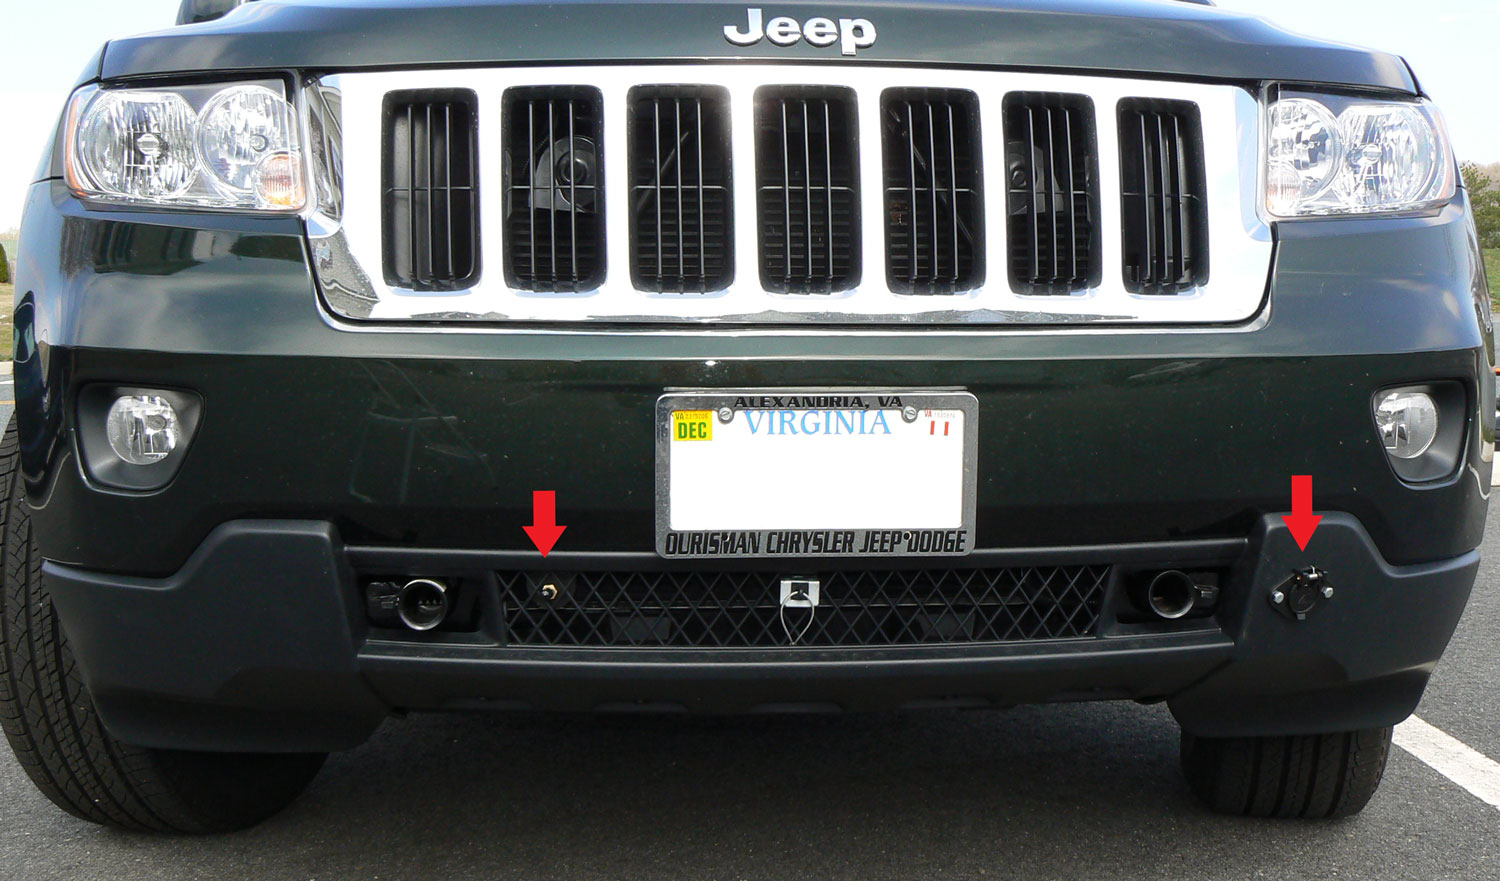 Click image for larger version  Name:Jeep.jpg Views:84 Size:240.1 KB ID:19468